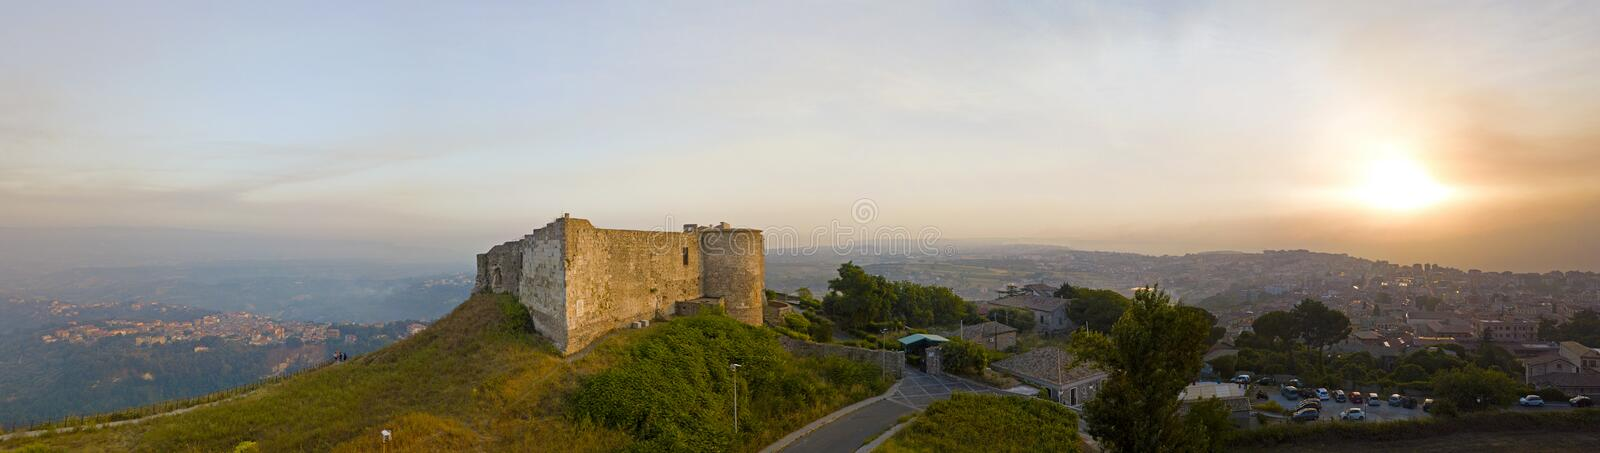 Aerial view of Normanno Svevo Castle, Vibo Valentia, Calabria, Italy royalty free stock images